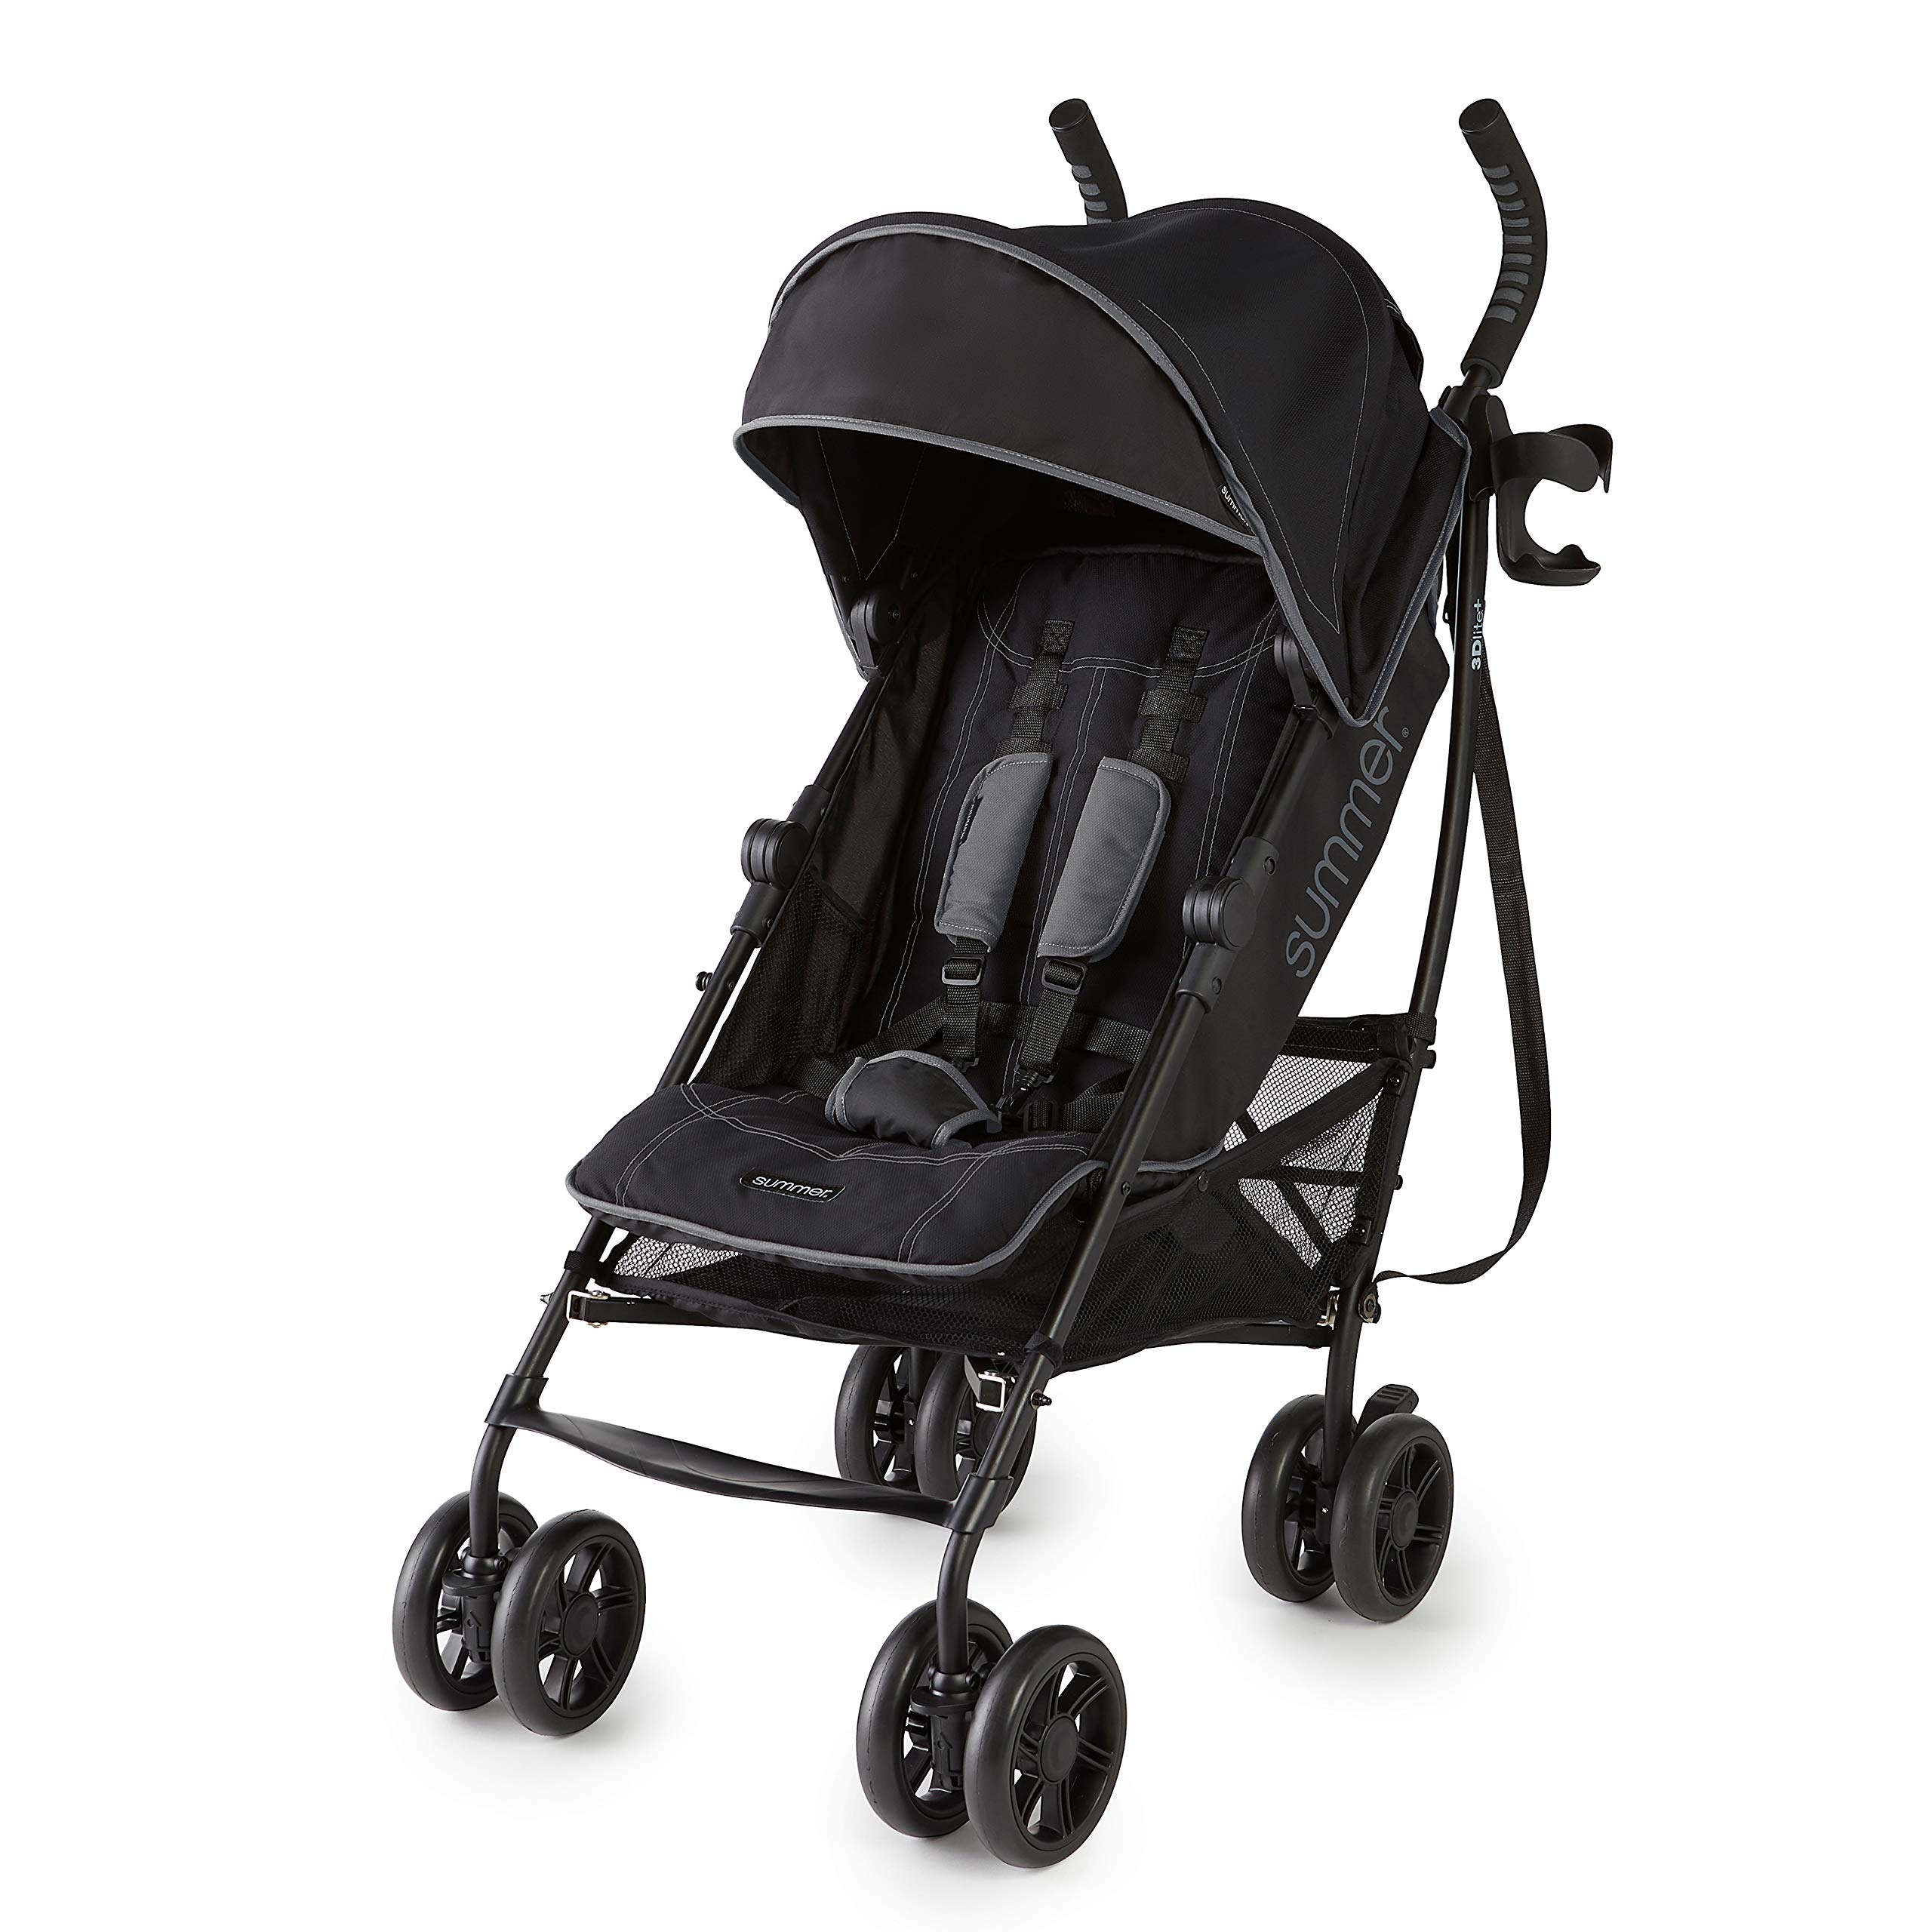 Summer 3Dlite+ Convenience Stroller, Matte Black - Lightweight Umbrella Stroller with Oversized Canopy, Extra-Large Storage and Compact Fold